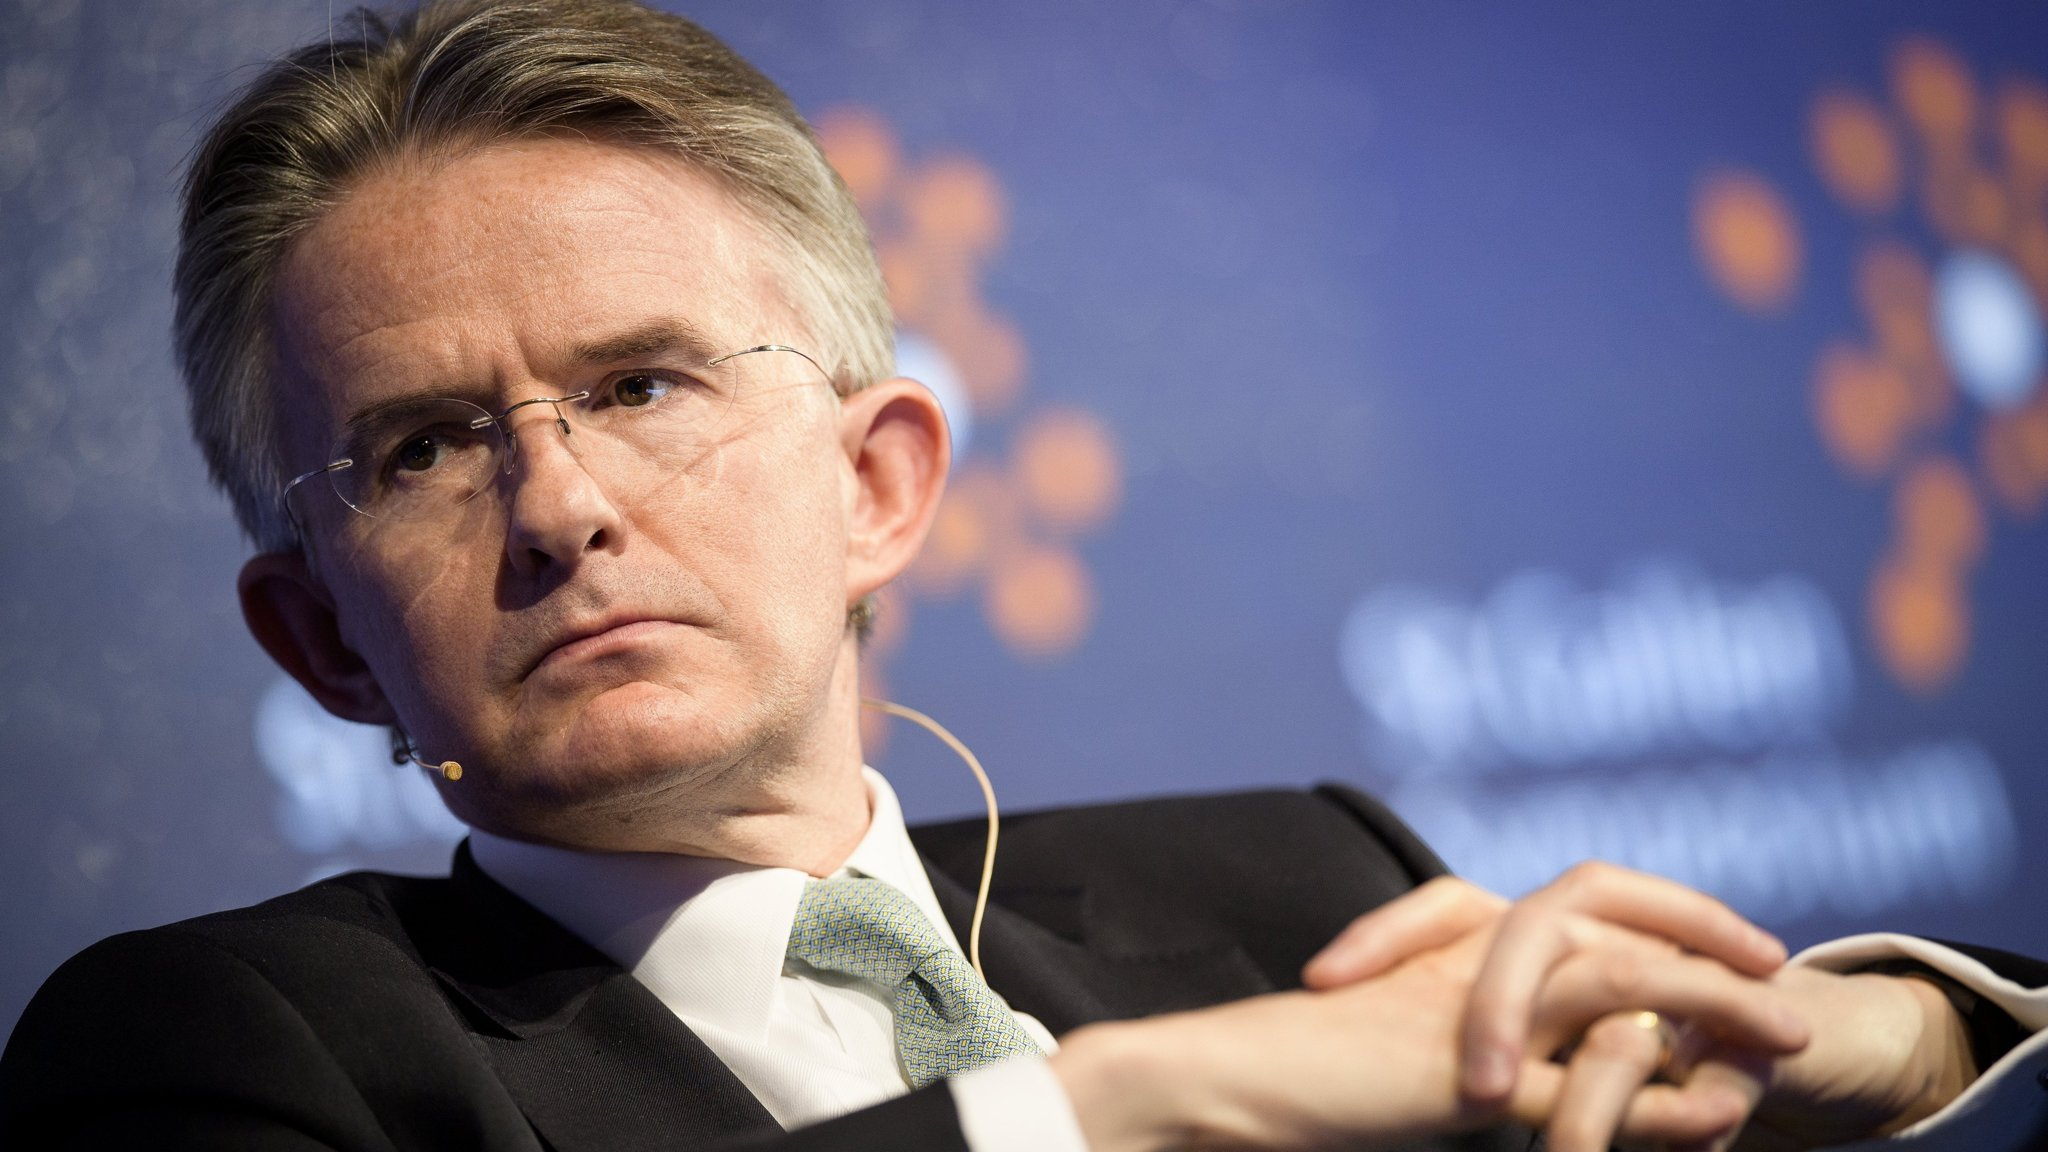 HSBC chief executive John Flint ousted after less than 18 months